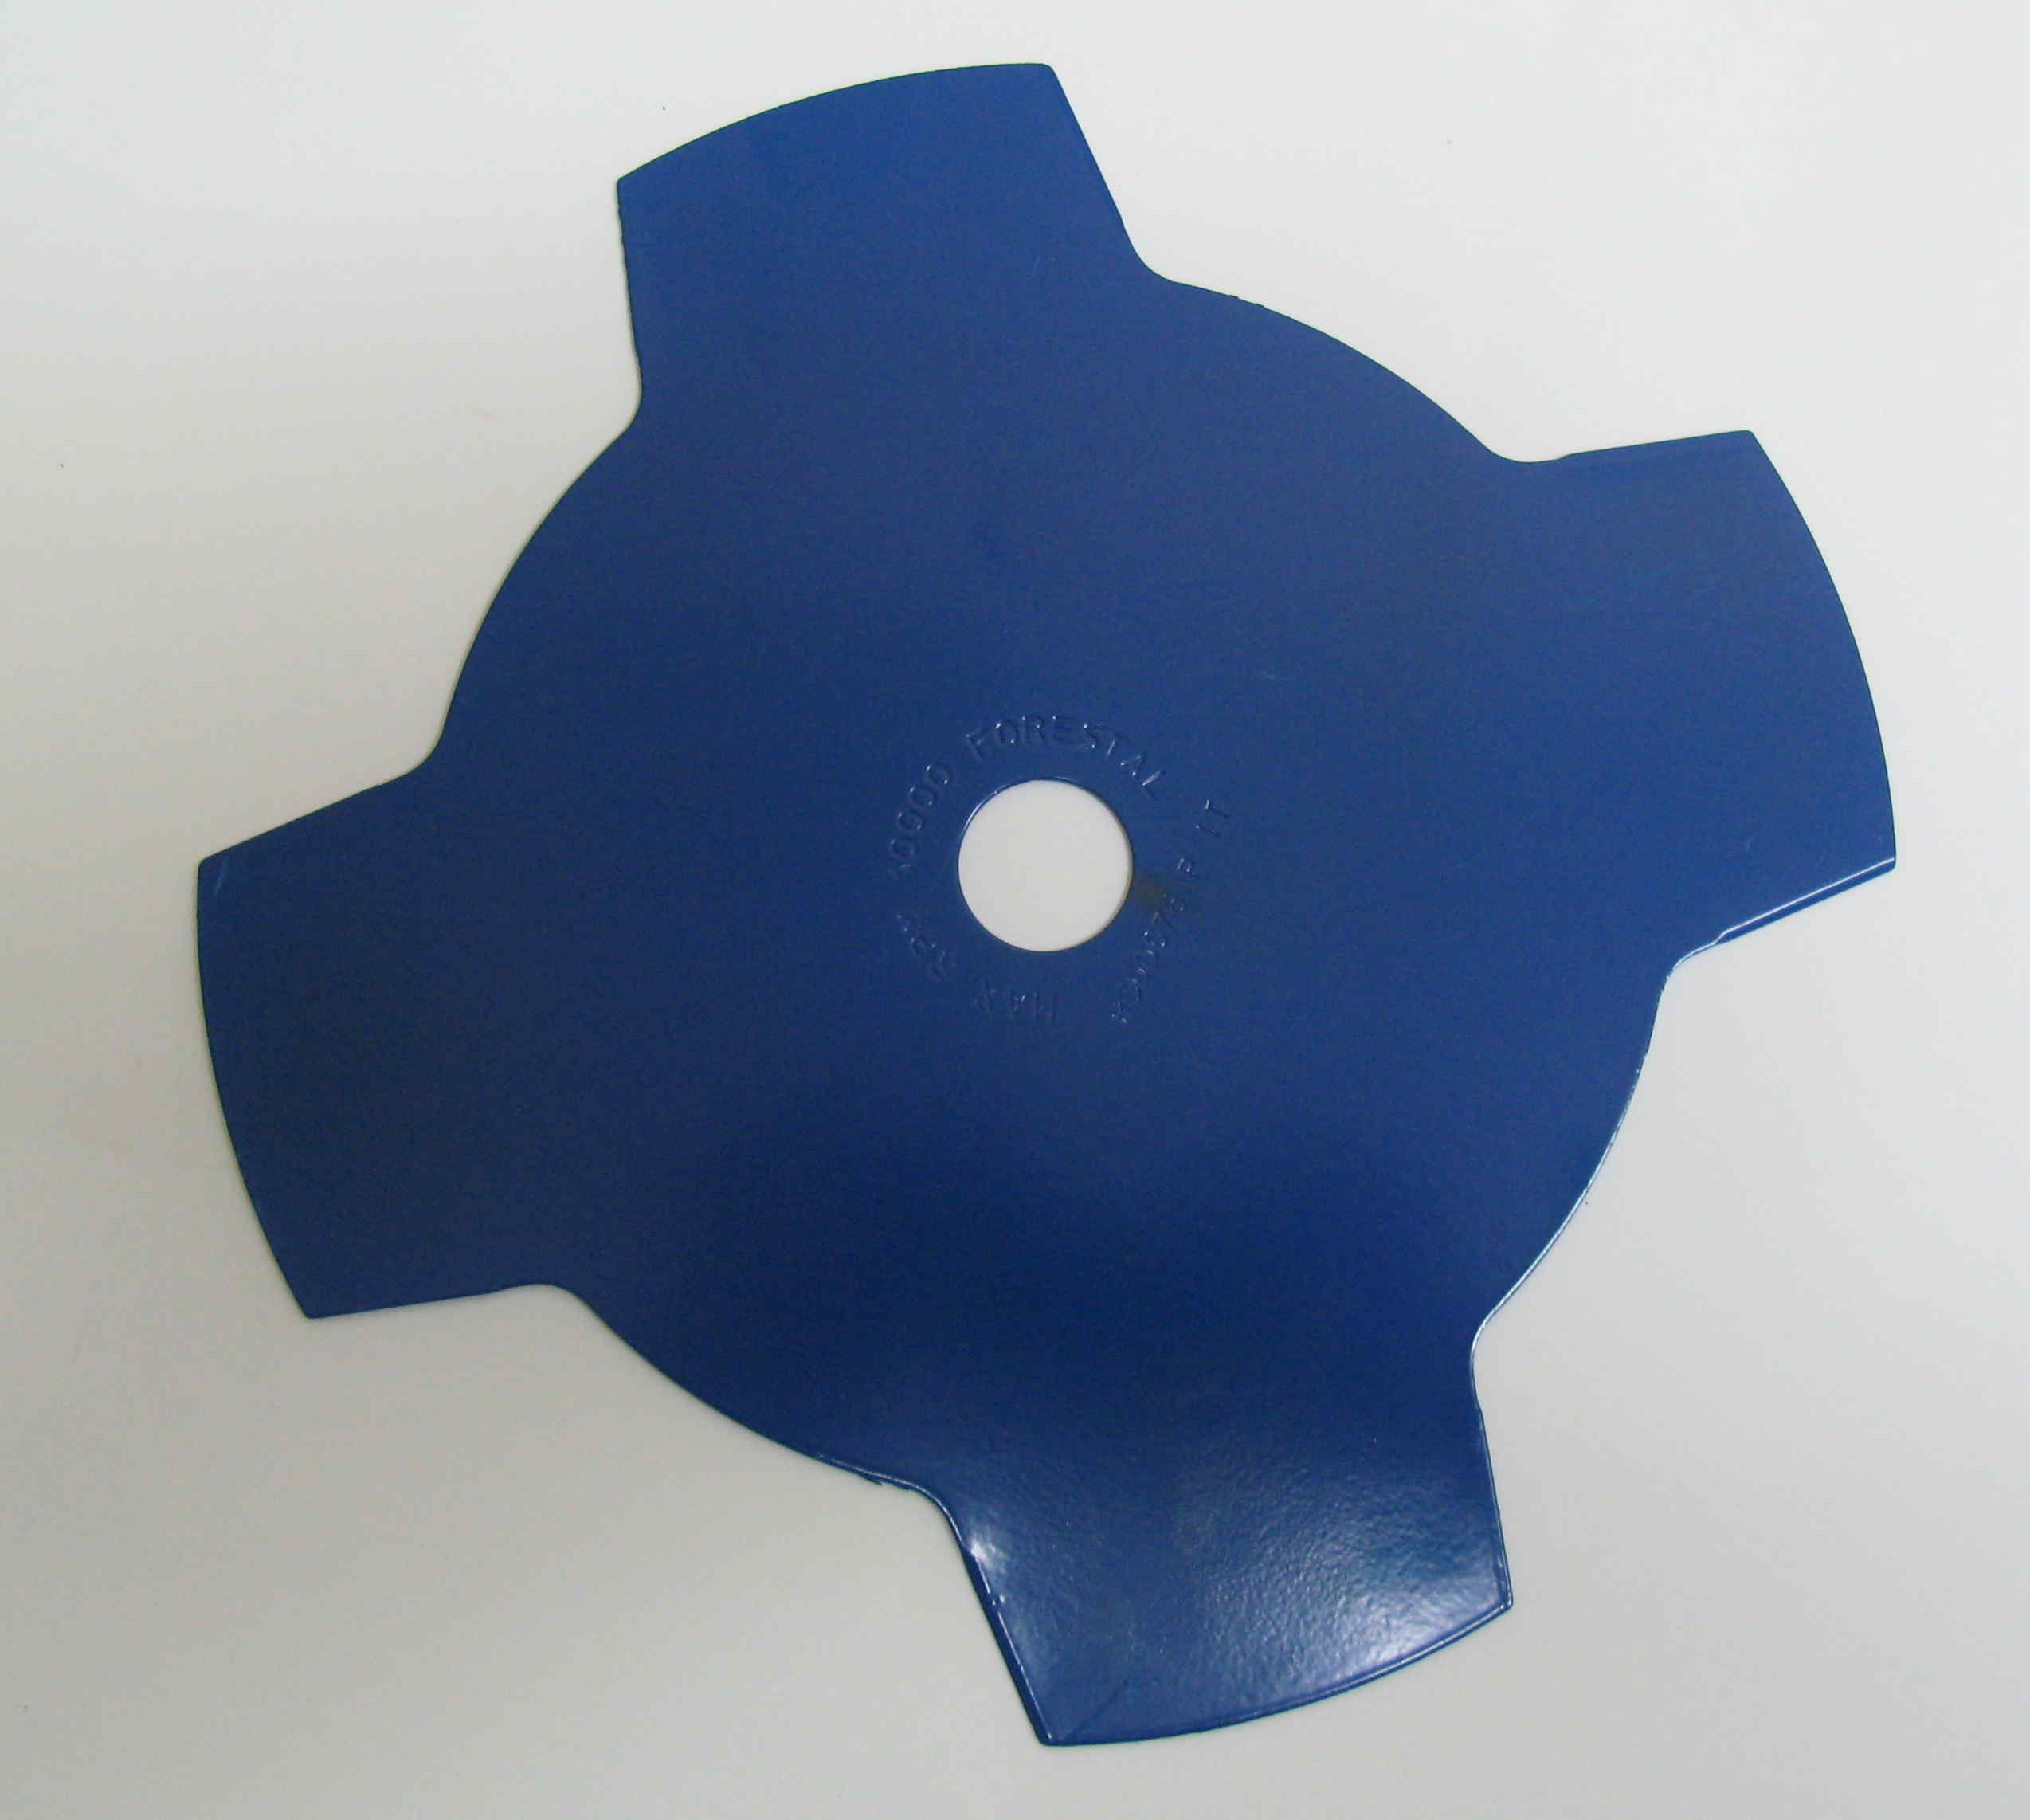 4-tooth 255mm metal brushcutter blade  (25.4mm bore). Free guard.